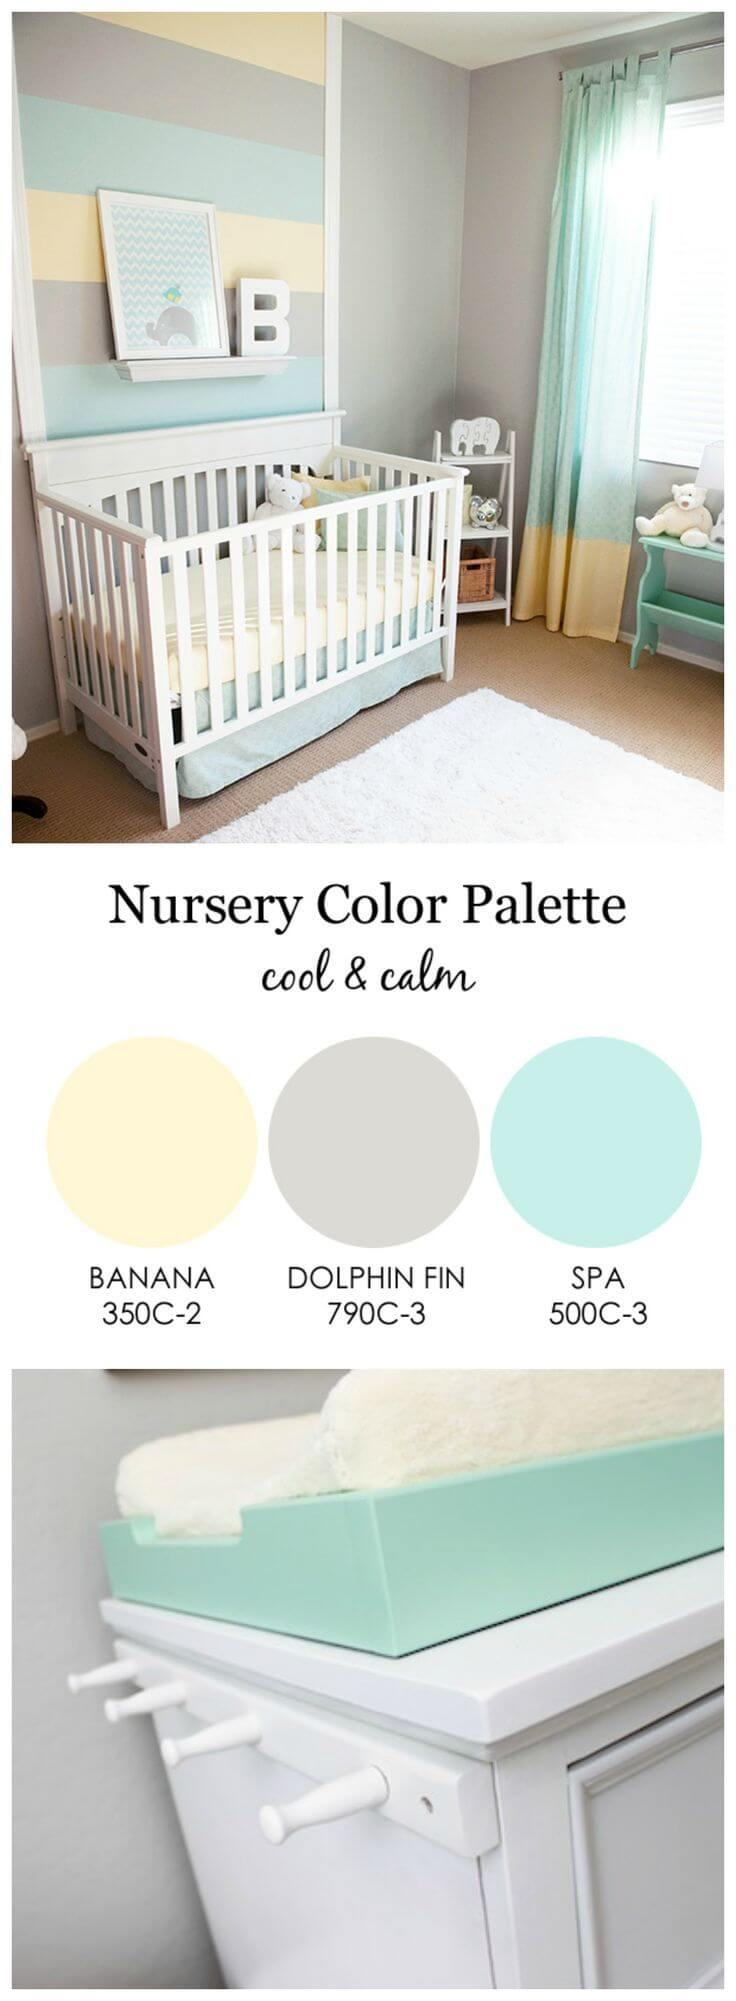 Gray is the New Addition to Nursery Color Palettes